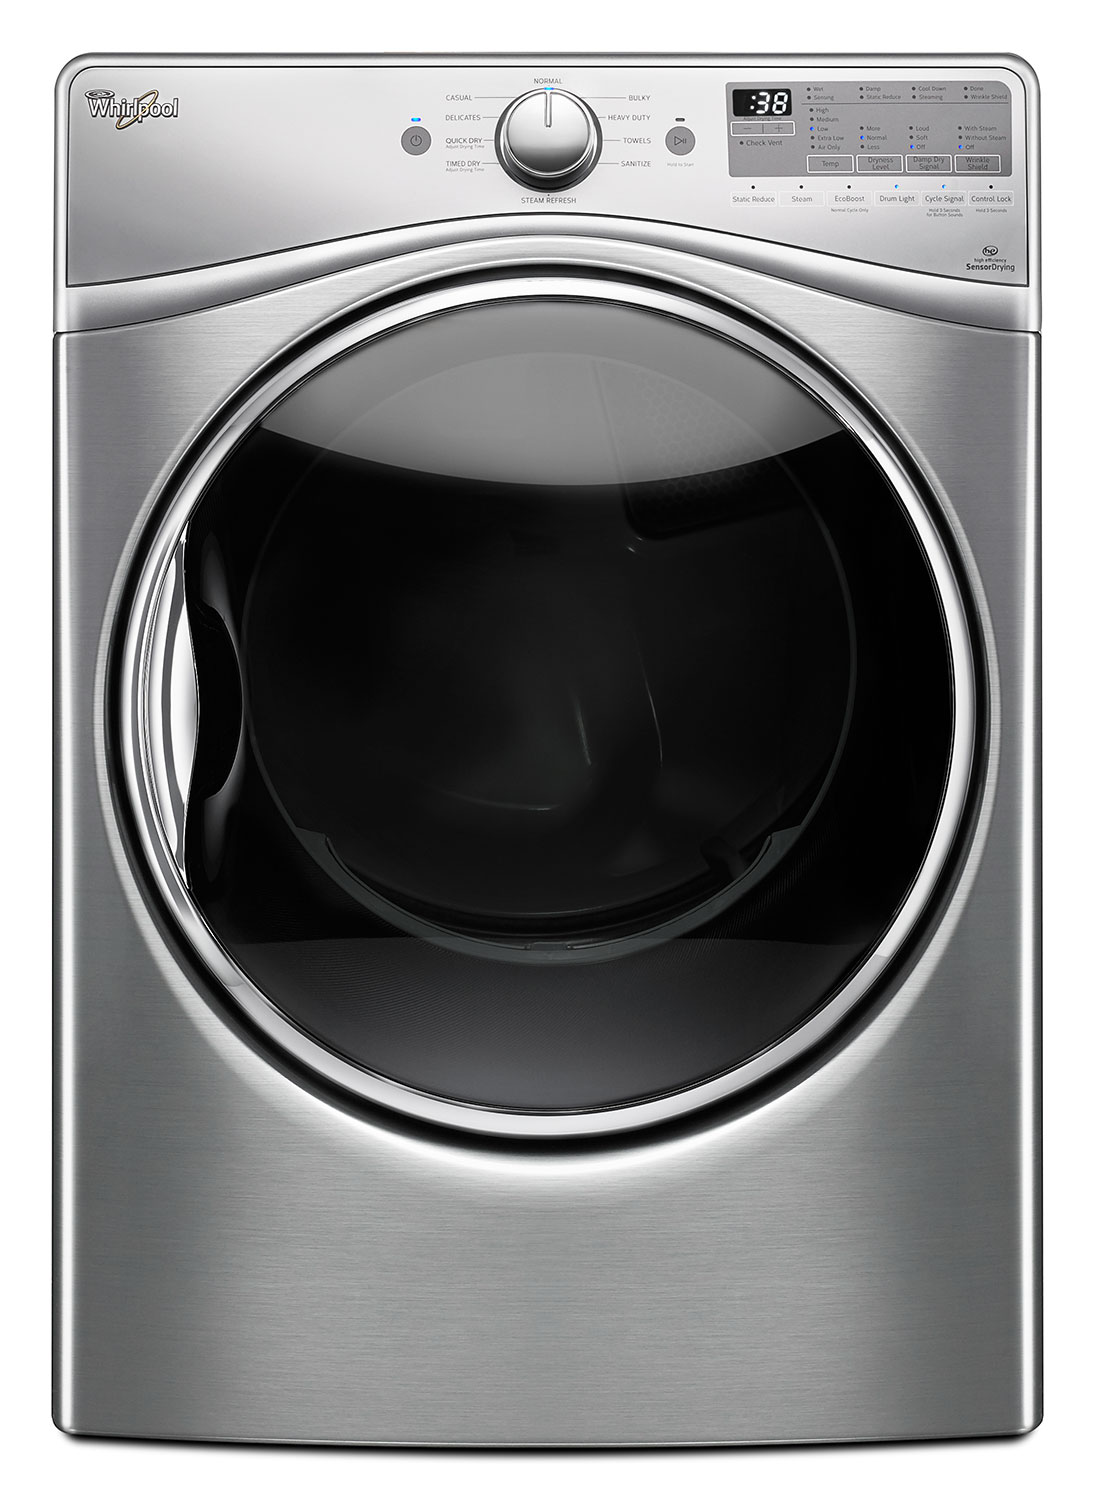 Whirlpool Diamond Steel Dryer (8.5 Cu. Ft.) - YWED92HEFU